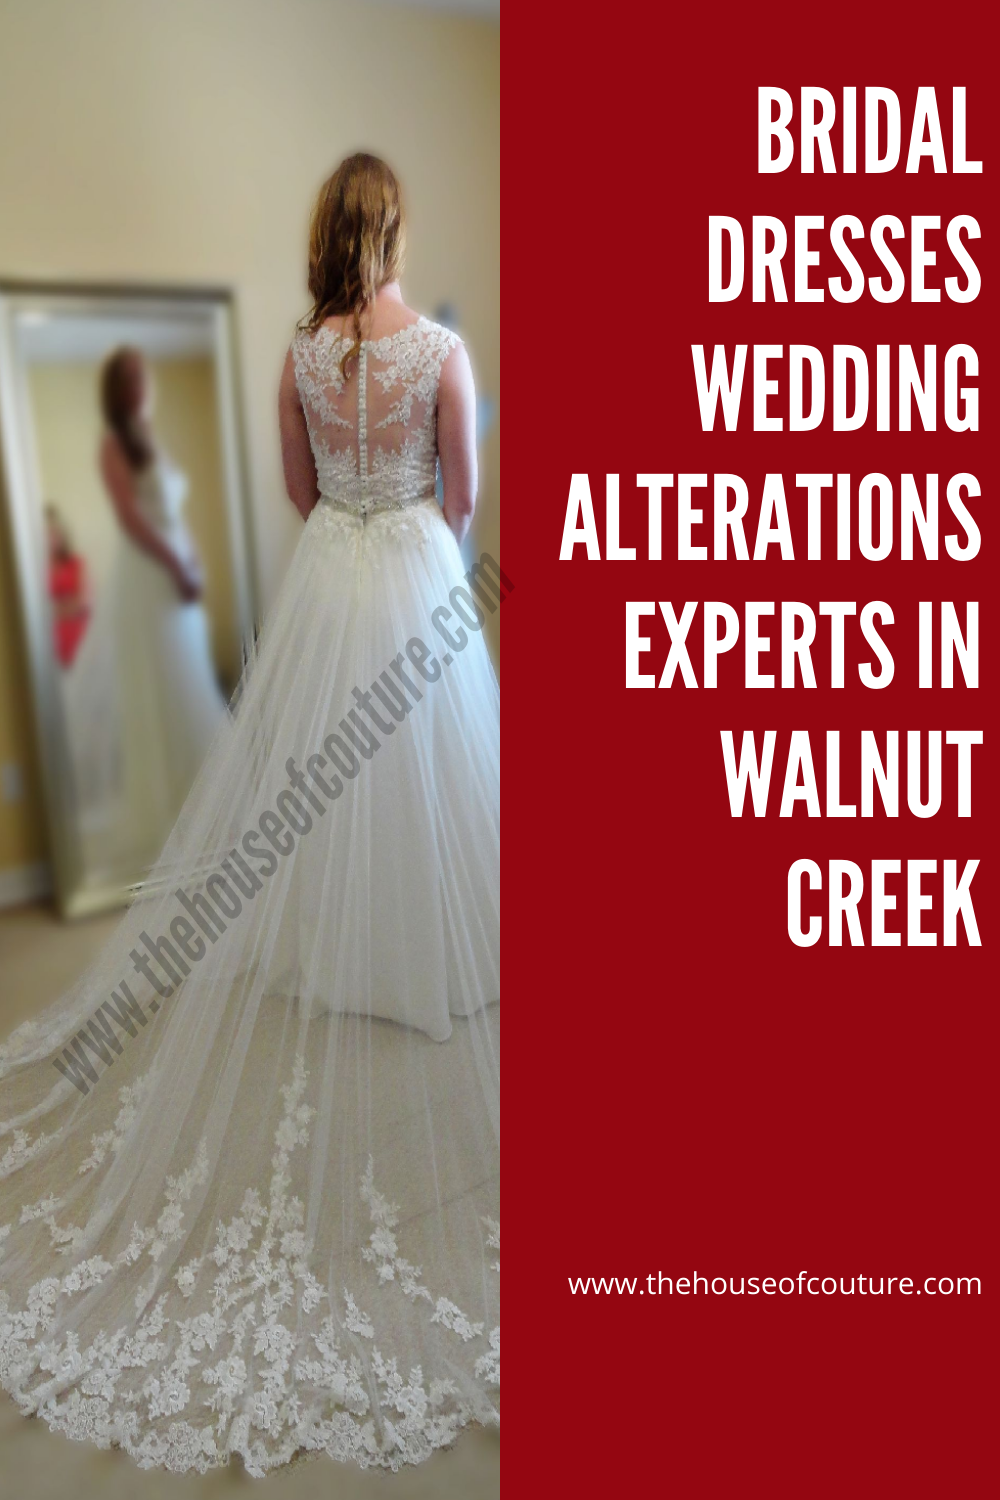 Wedding Alterations Experts in Walnut Creek in 2020